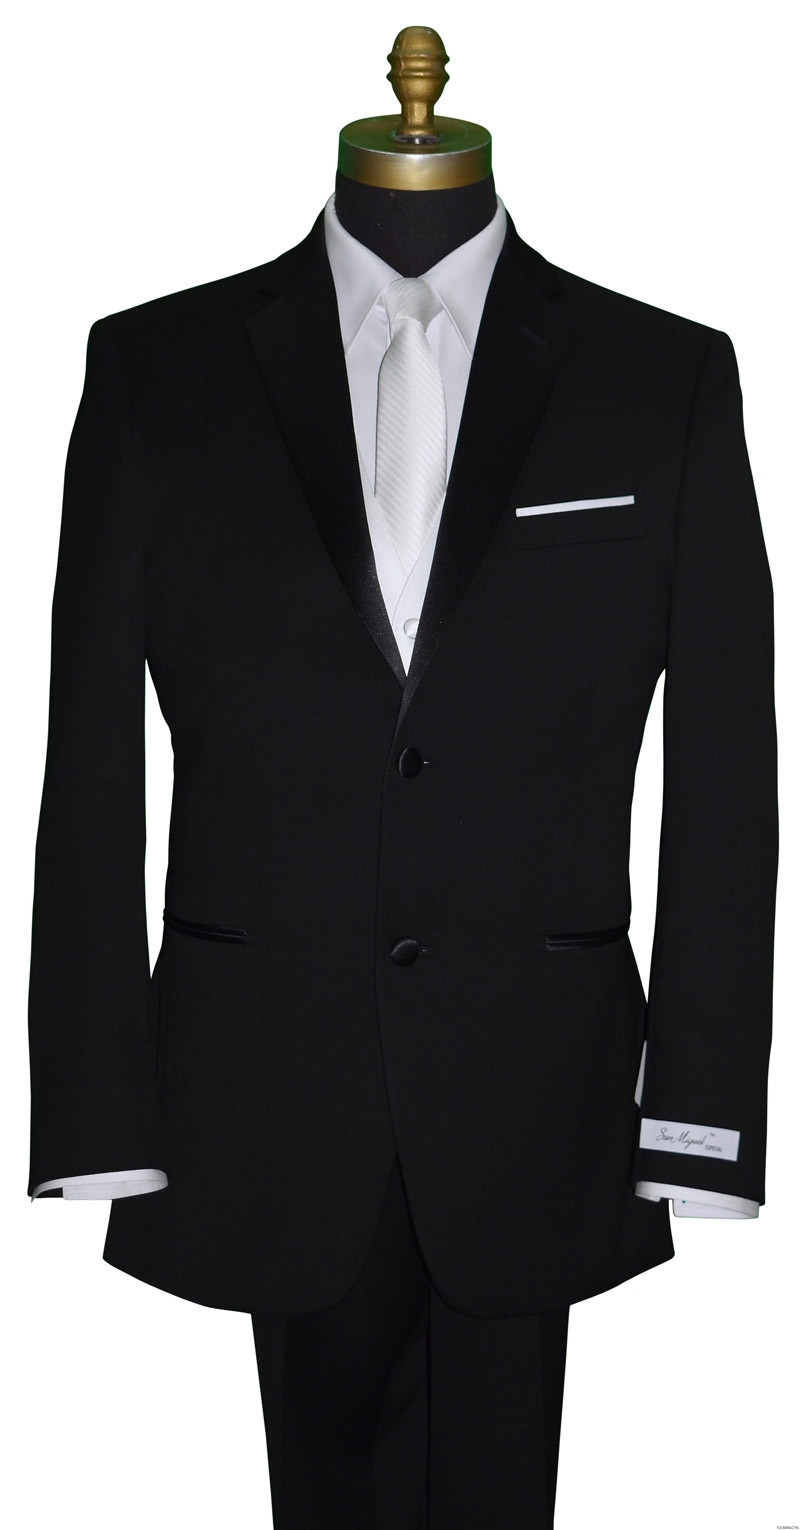 black grooms tuxedo with skinny white tie by San Miguel Formalsme